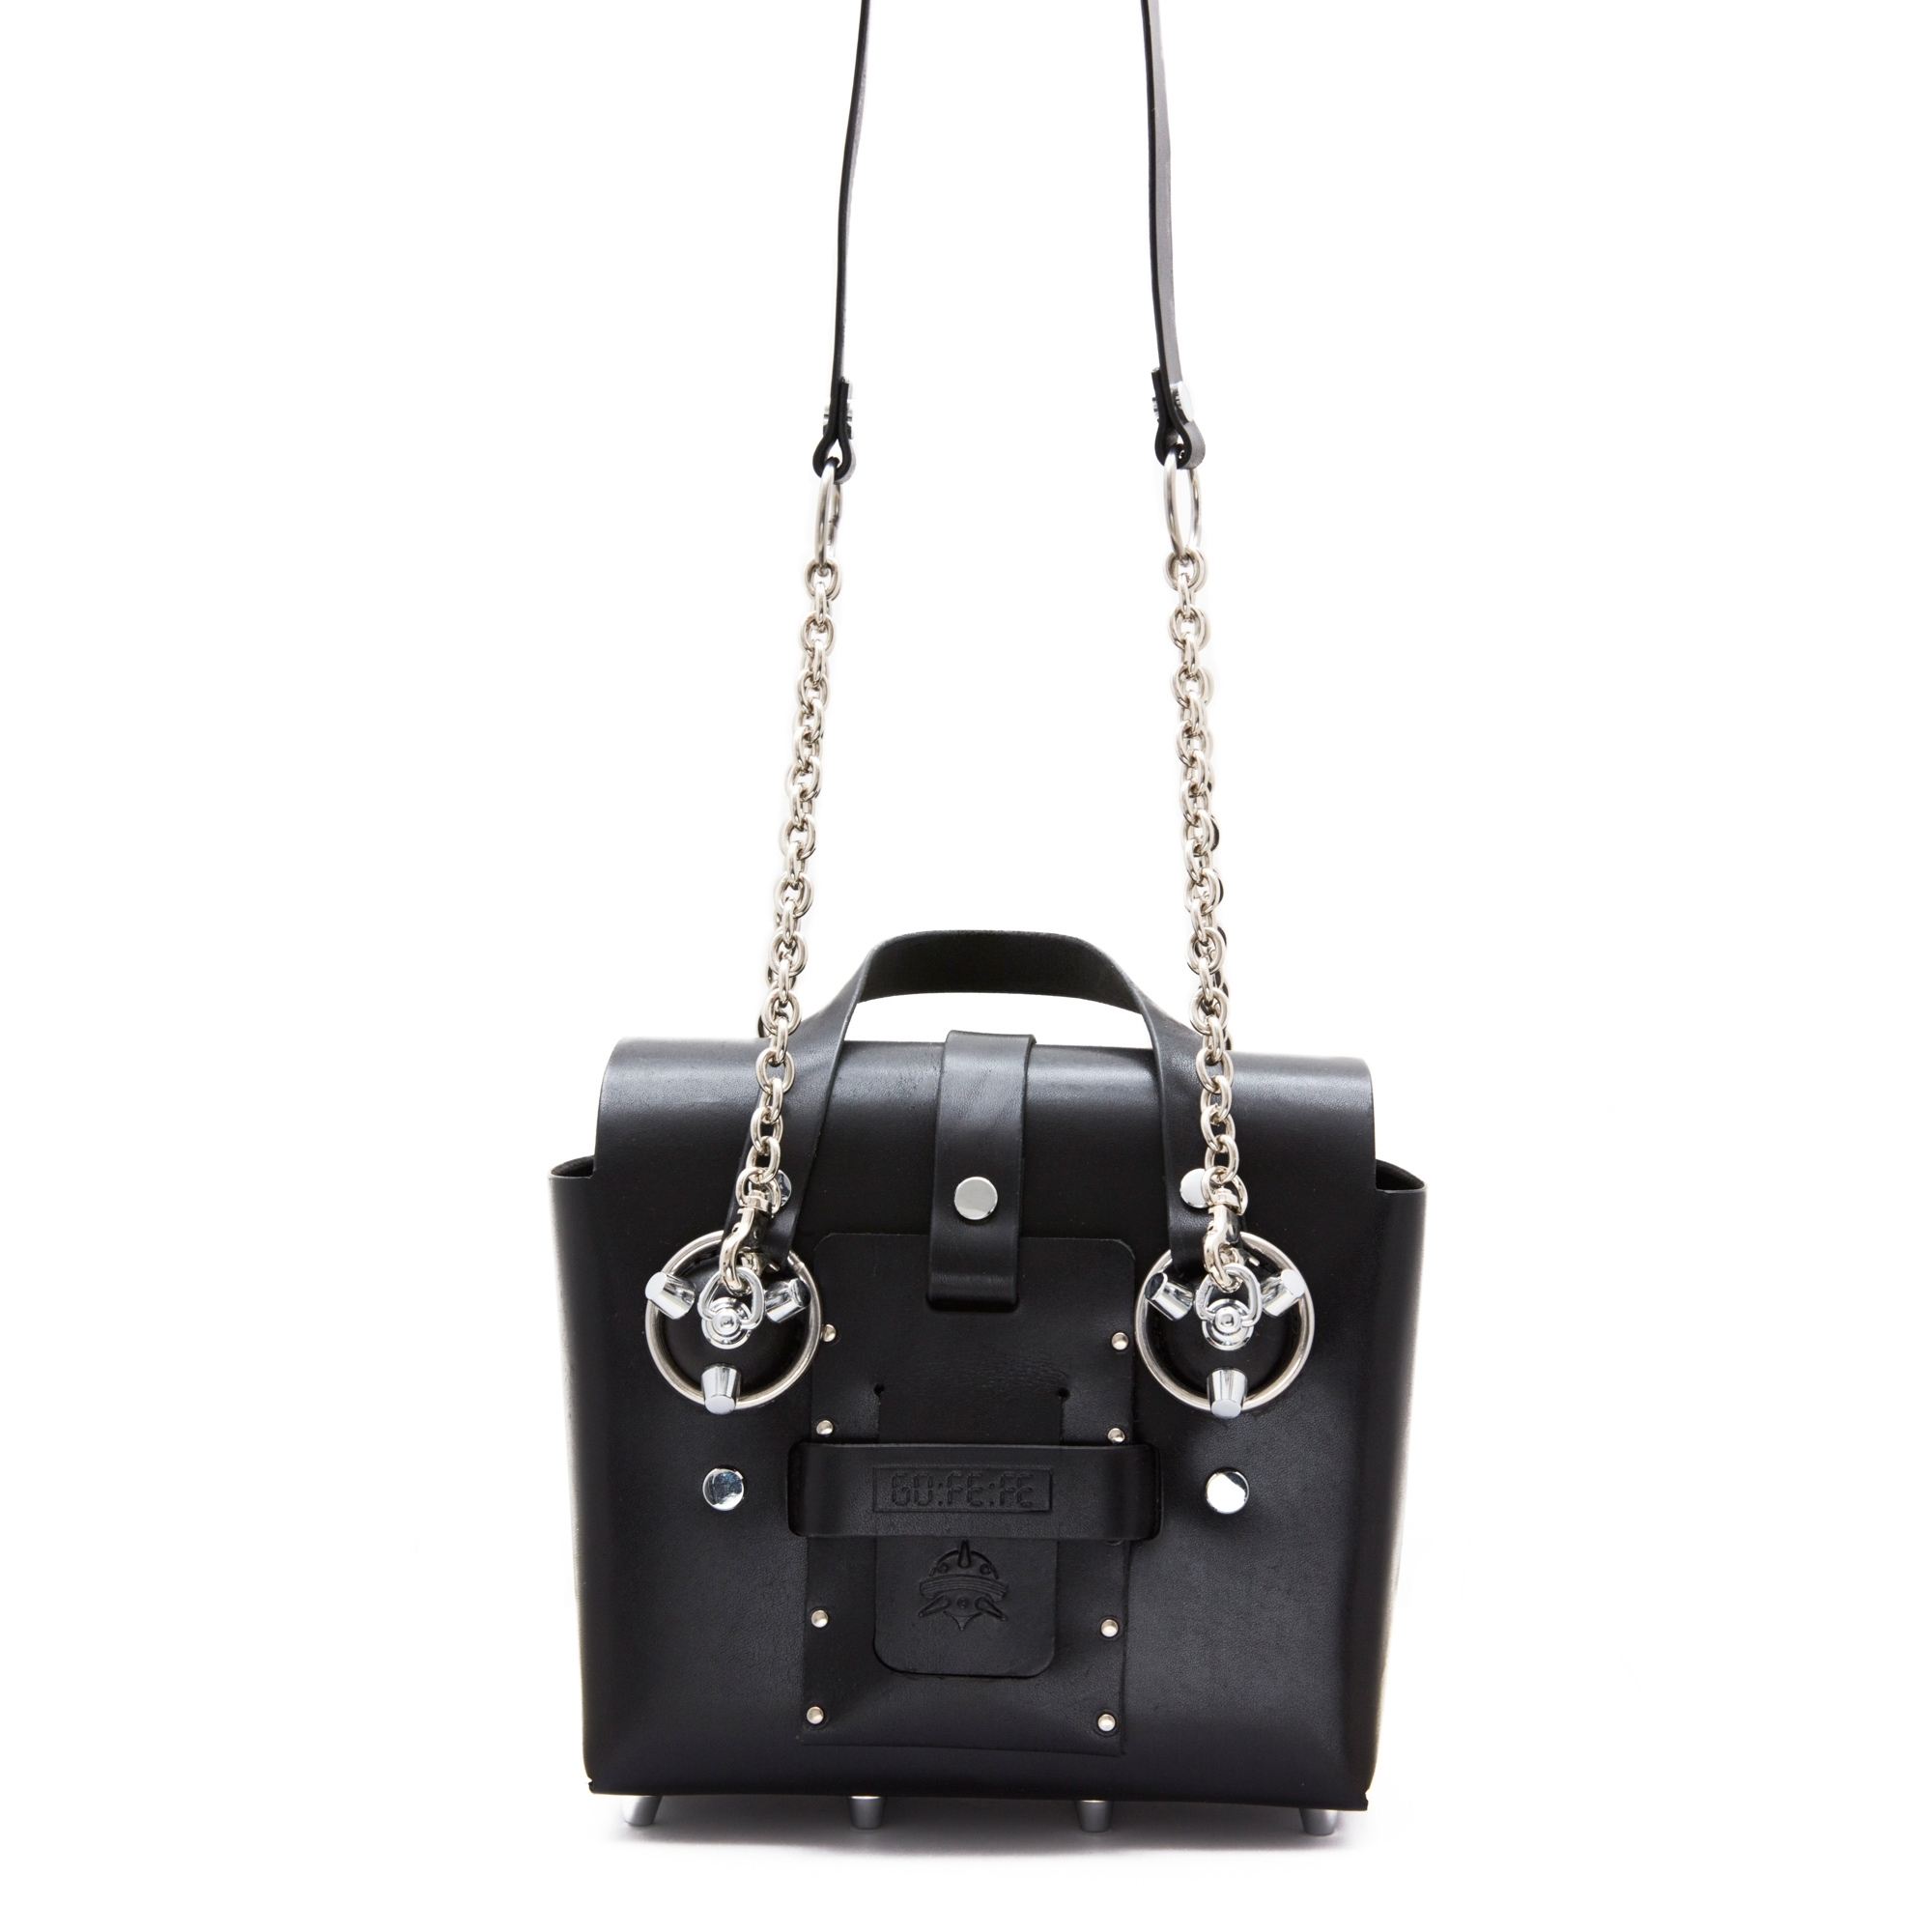 Small Black Silver Studded Leather Bag